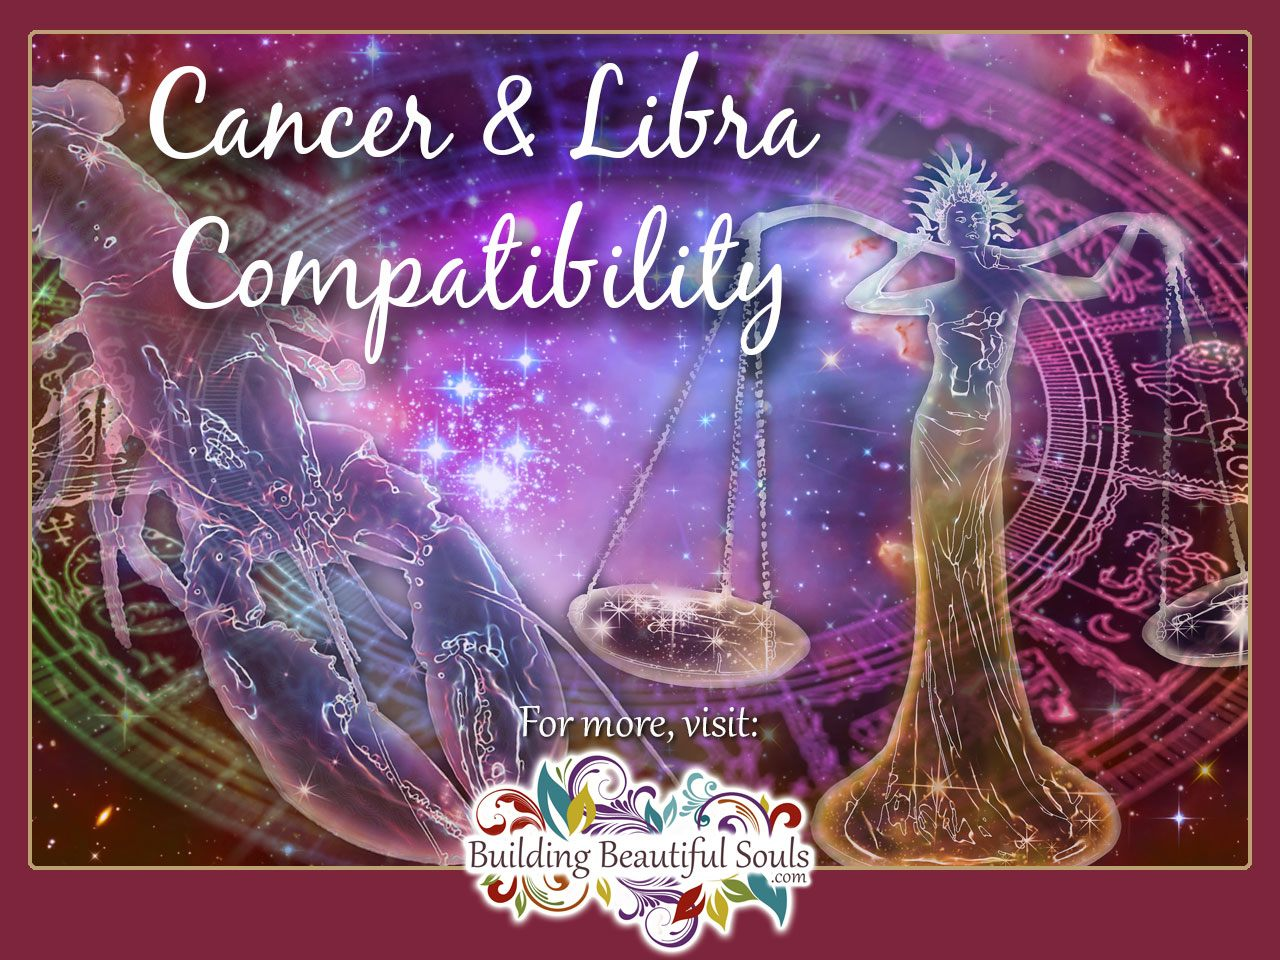 Cancer Libra Libra And Cancer Compatibility Friendship Love And Sex